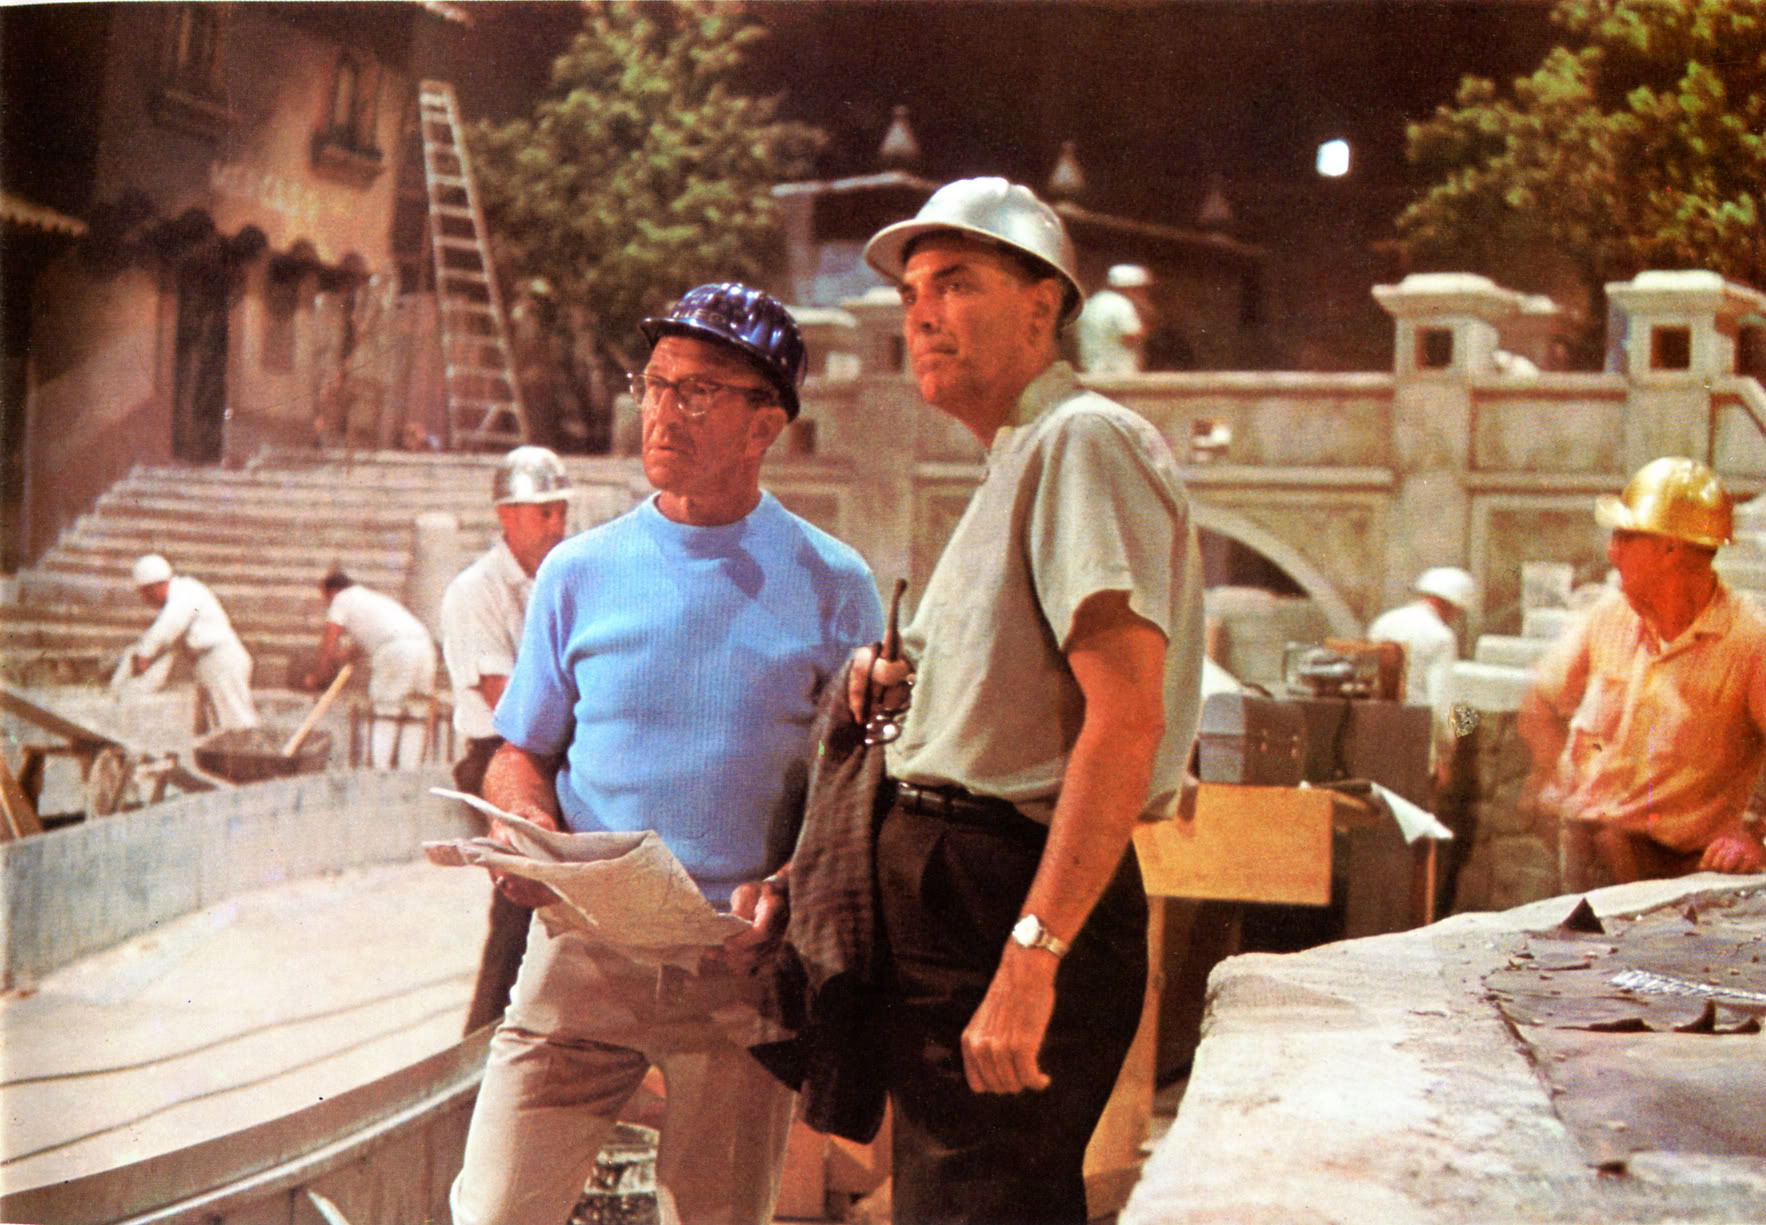 Claude on the right directing the work on Pirates of the Caribbean at Disneyland with Fred Joerger on the left. In the podcast, Tony discovers this picture as an Imagineer and makes an important connection to his relationship with Claude. Copyright Disney.